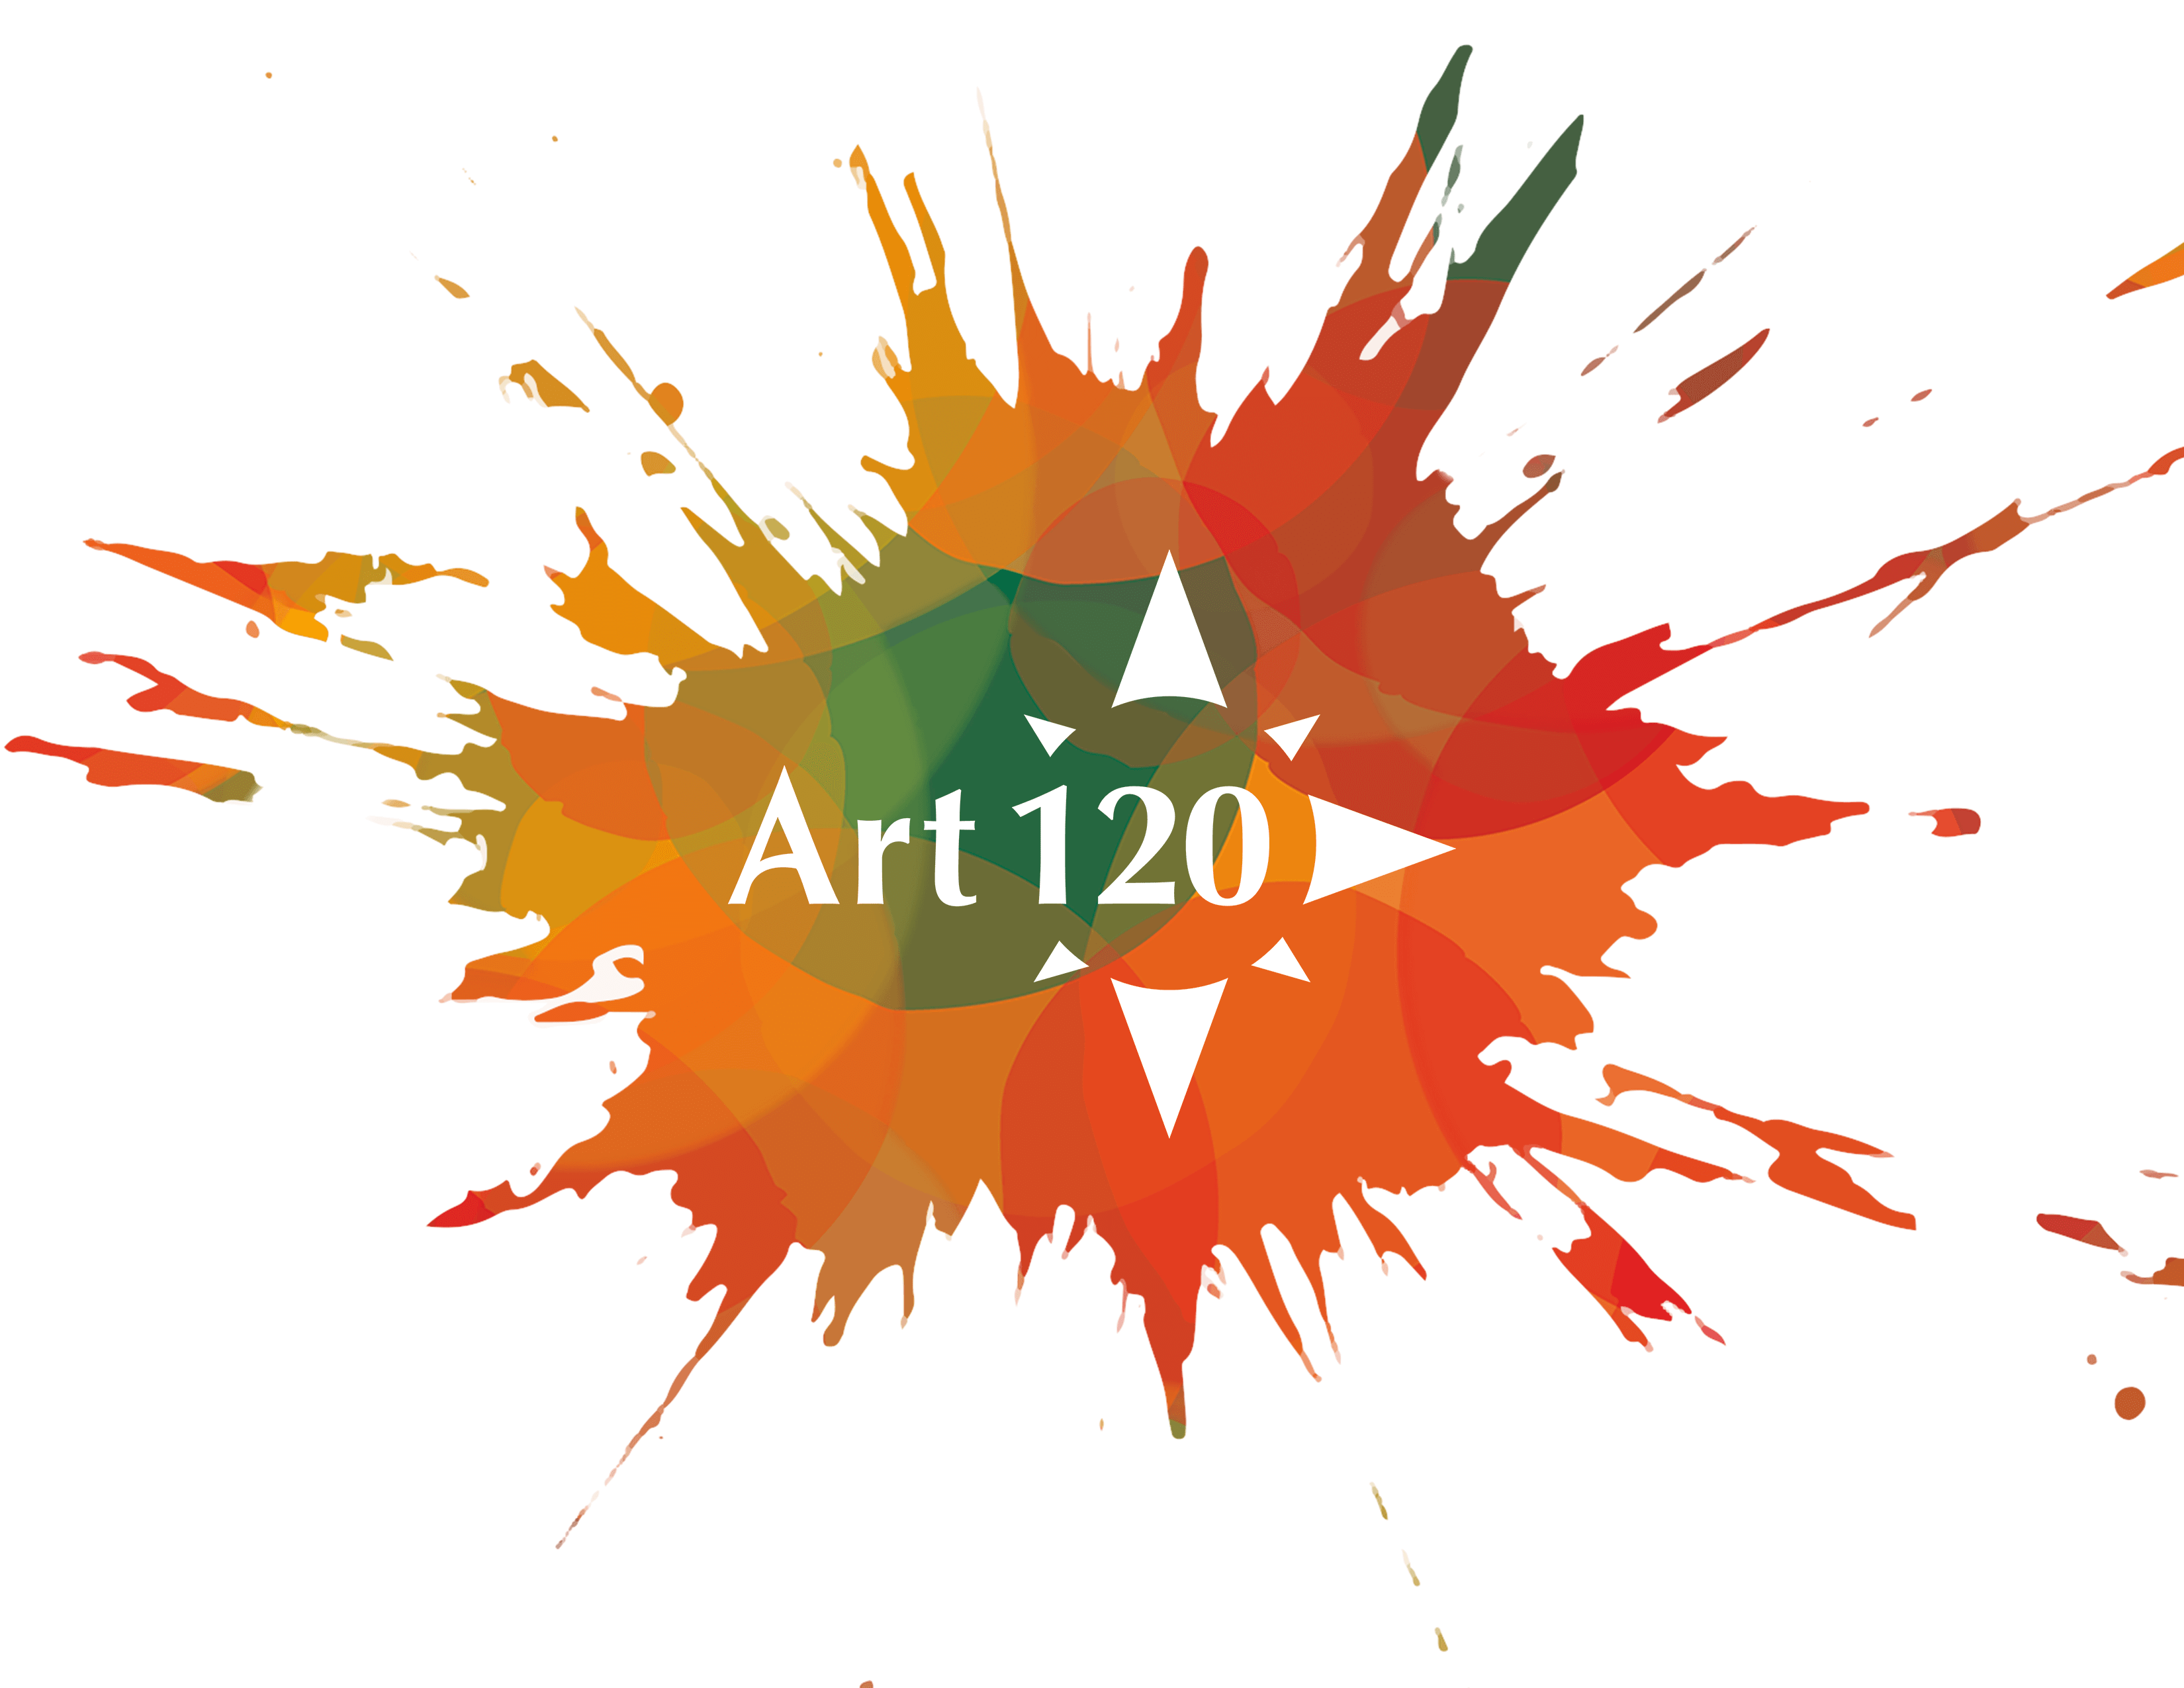 Art 120 Splash